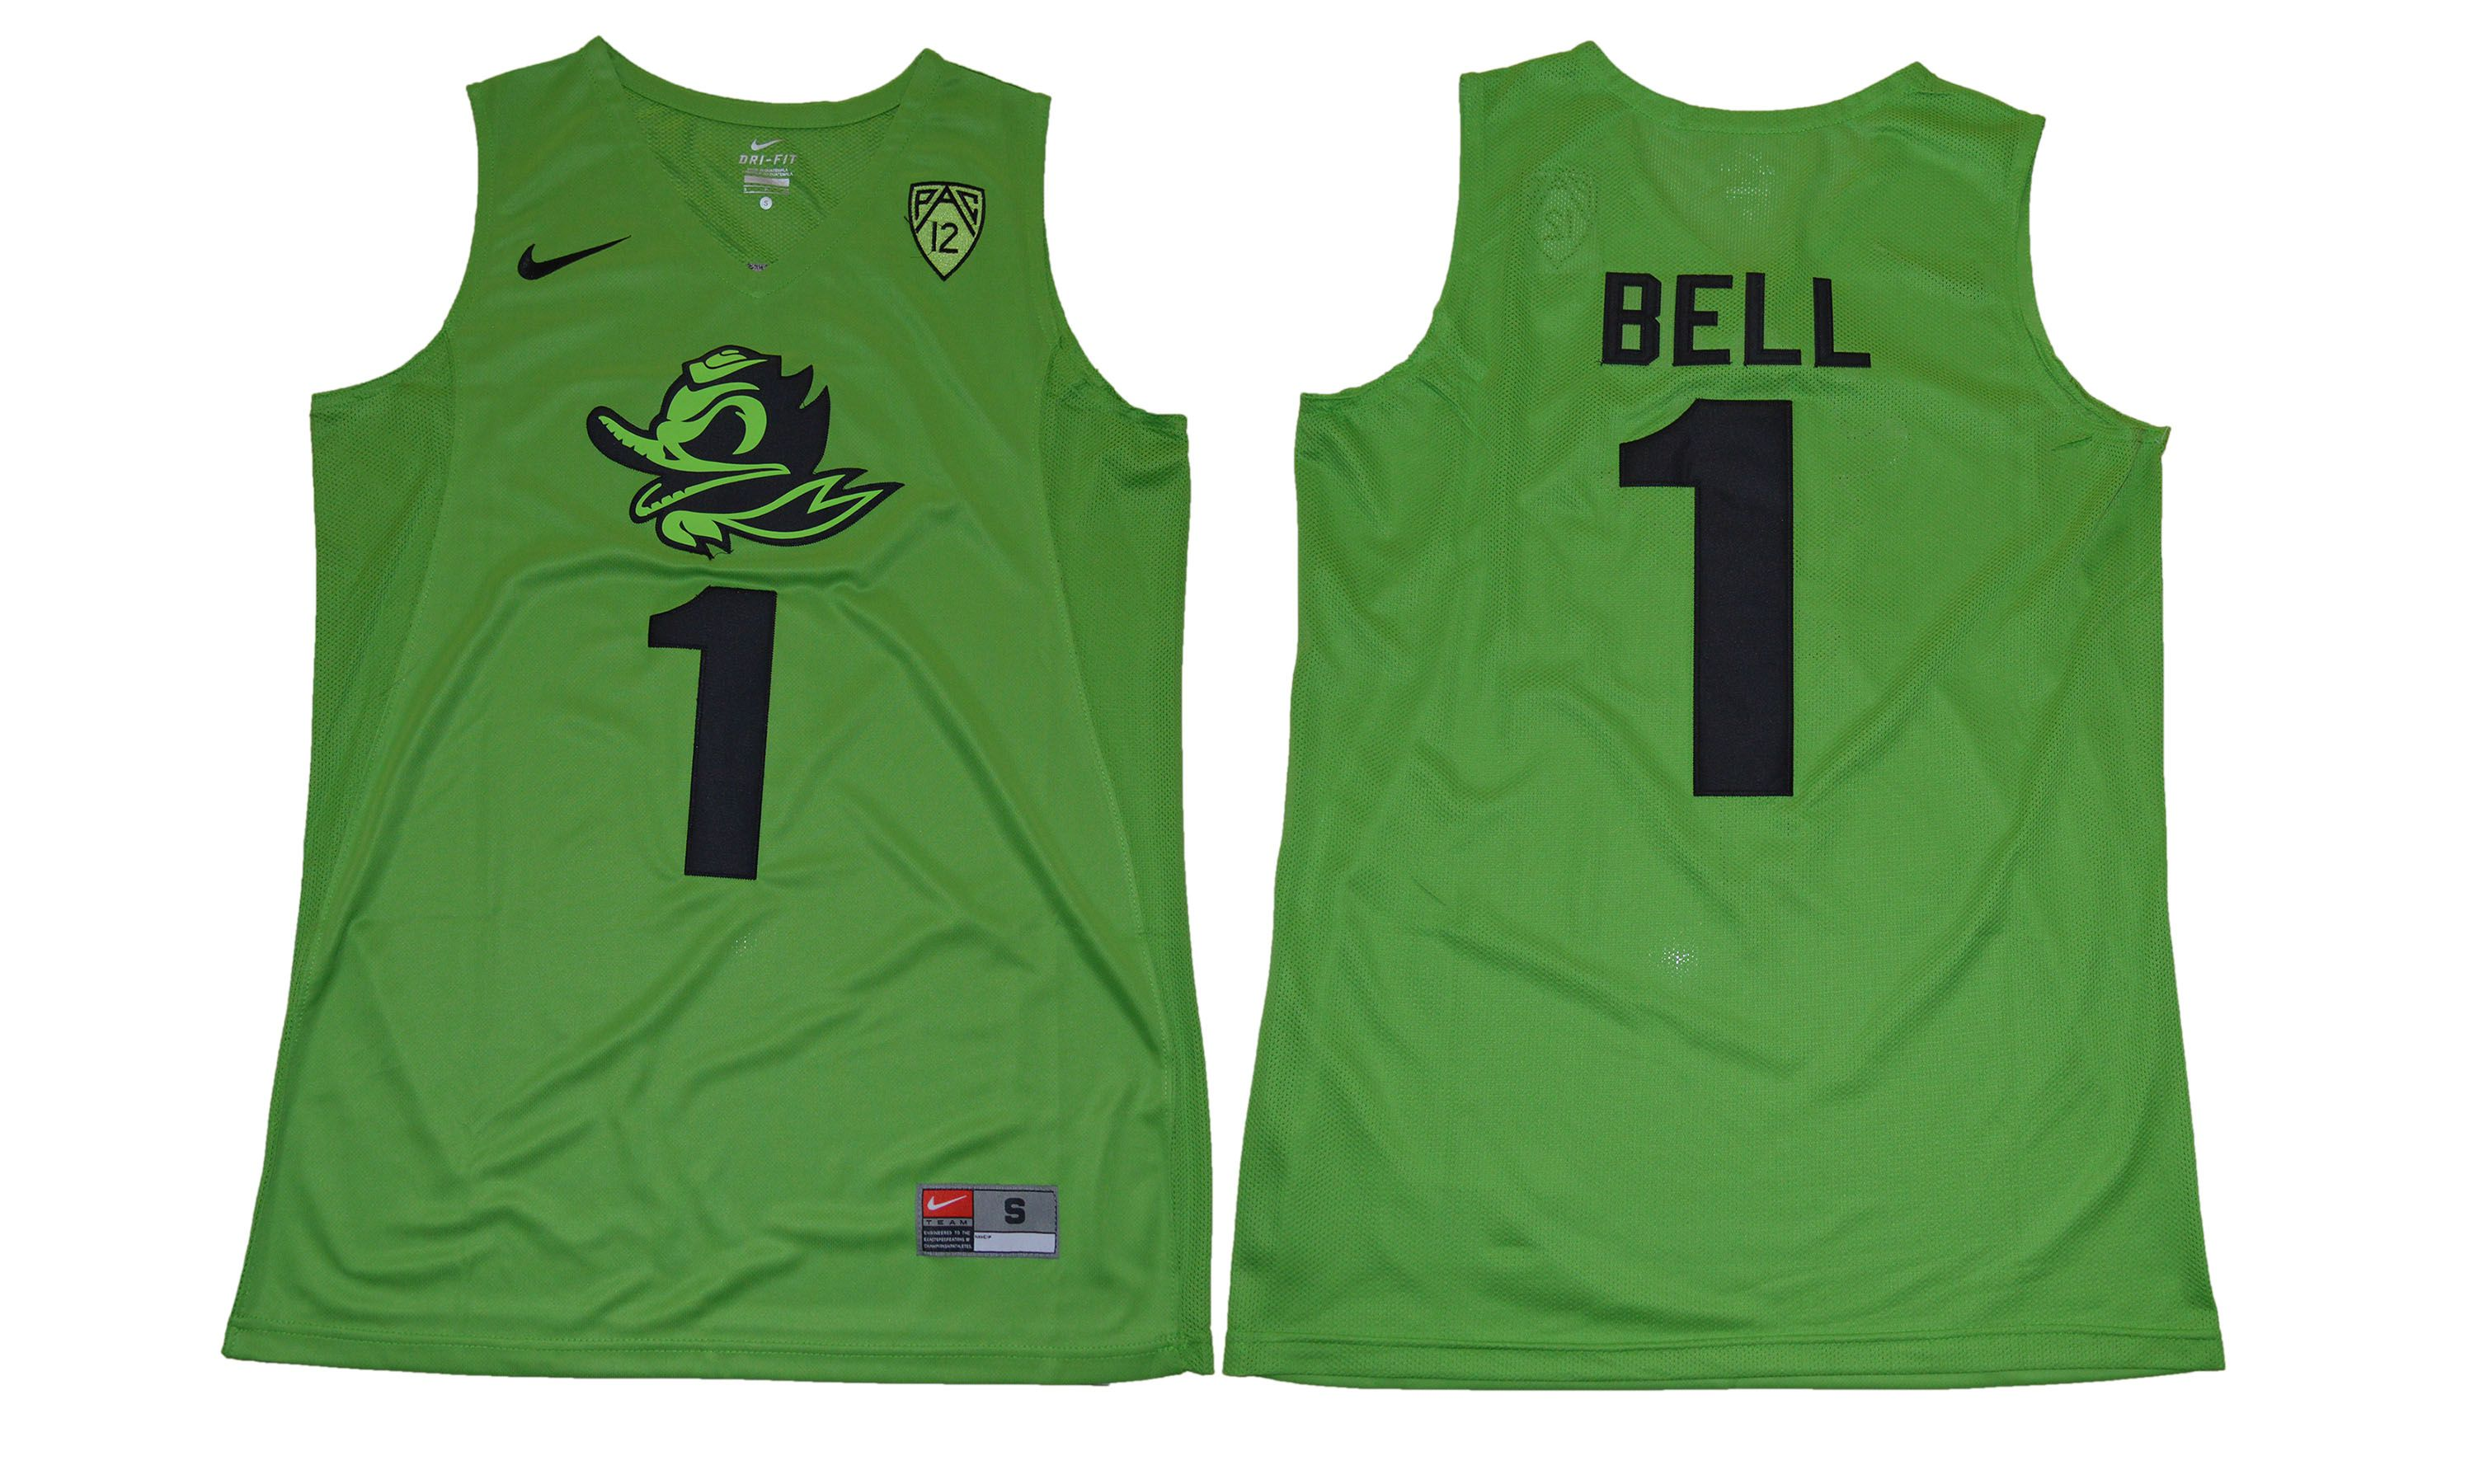 Men Oregon Ducks 1 Bell Green NCAA Jerseys